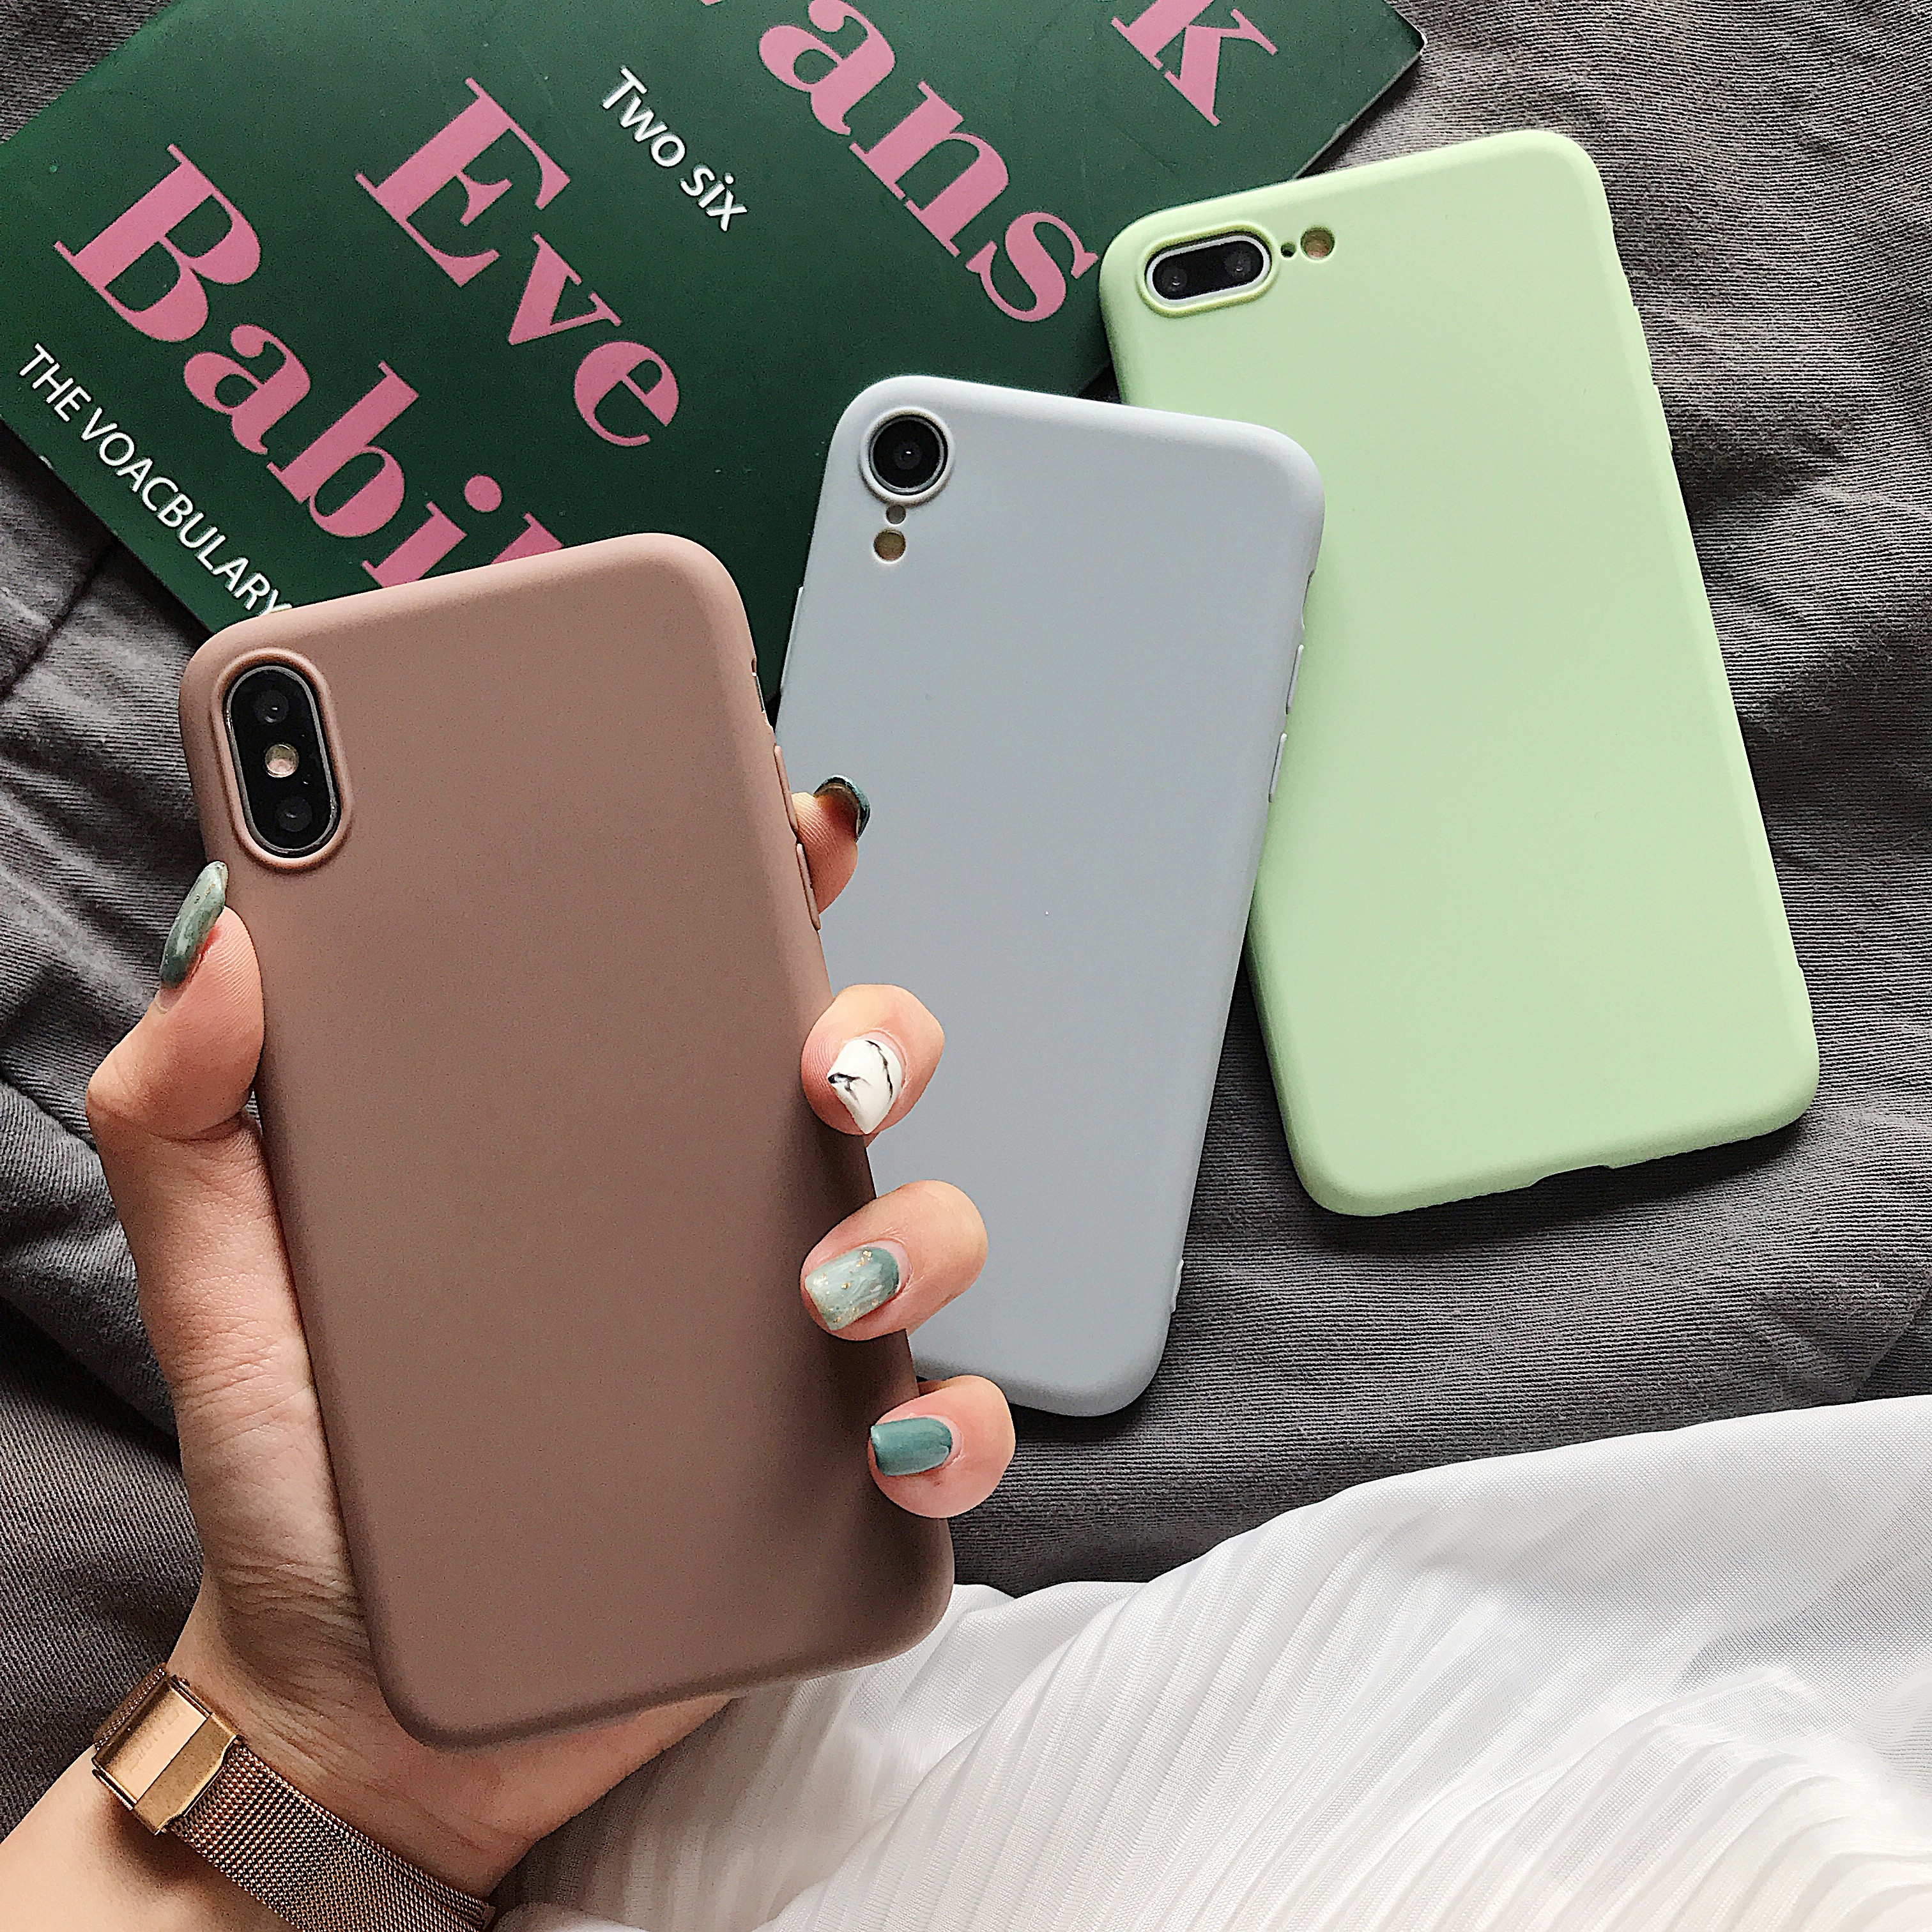 TTLOOF Silicone <font><b>Case</b></font> For Xiaomi Mi 9 SE <font><b>case</b></font> <font><b>xiomi</b></font> Xiaomi <font><b>redmi</b></font> 7 7A 4A <font><b>4X</b></font> 5 Plus 5A <font><b>Note</b></font> 4 <font><b>4X</b></font> 6 7 K20 Pro Color Soft <font><b>TPU</b></font> Cover image